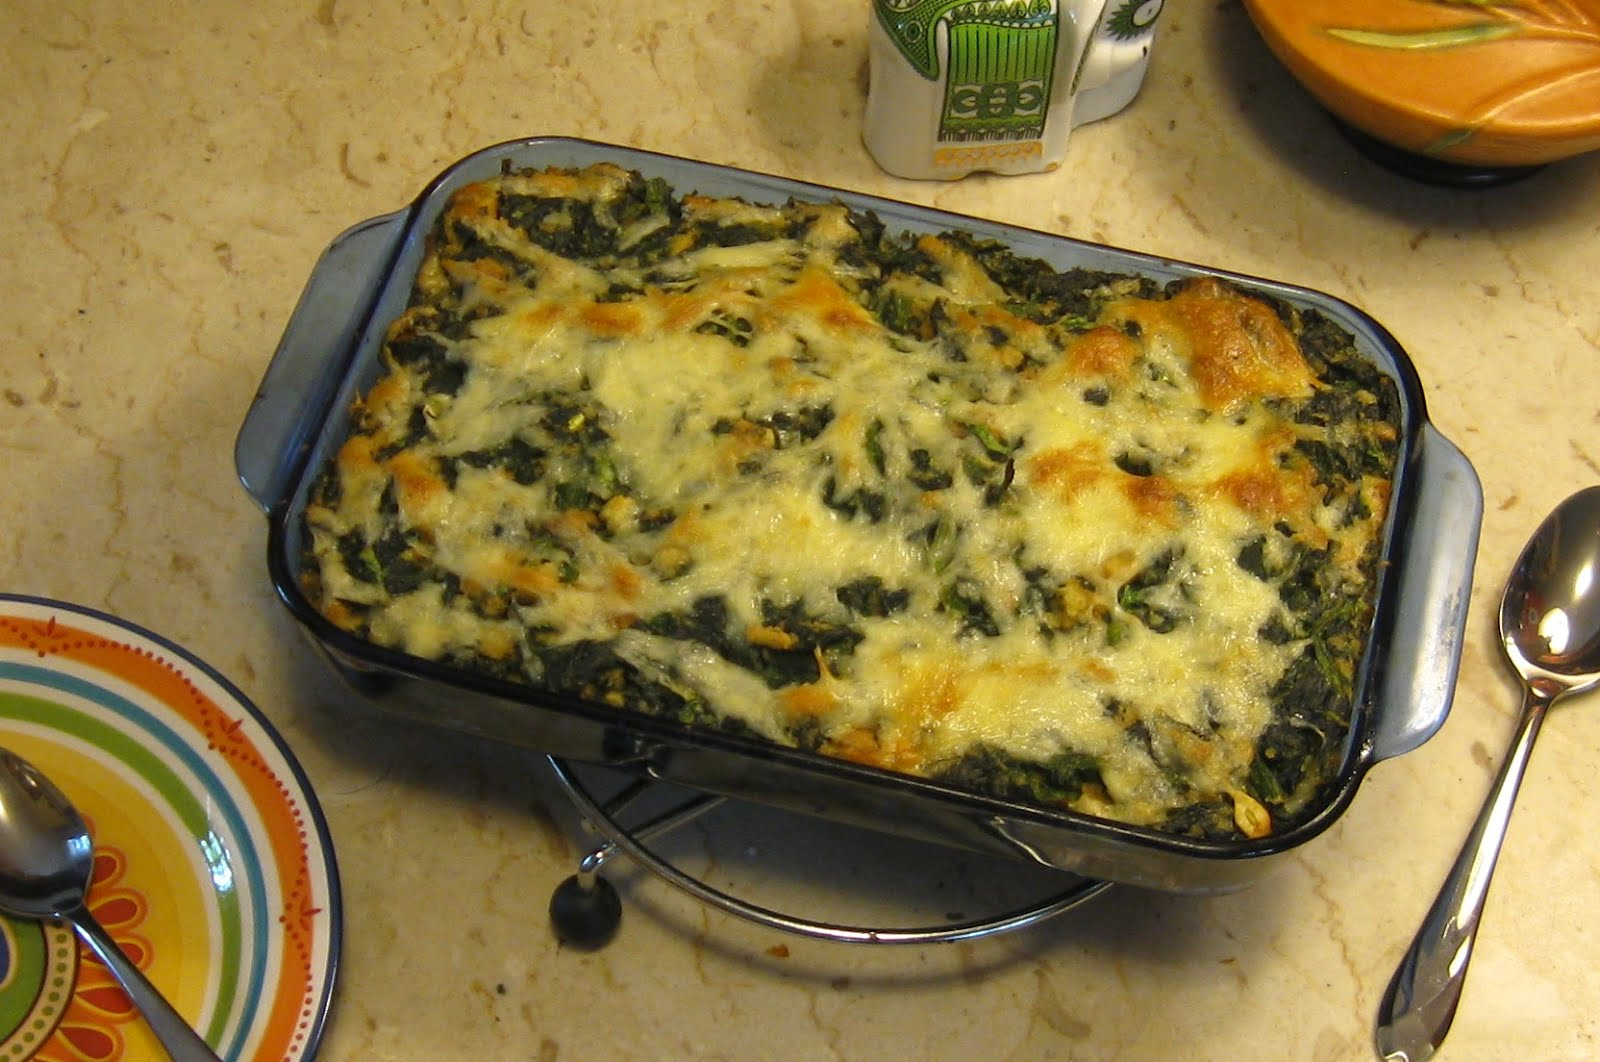 gratin potatoes au gratin makeover spinach gratin makeover spinach